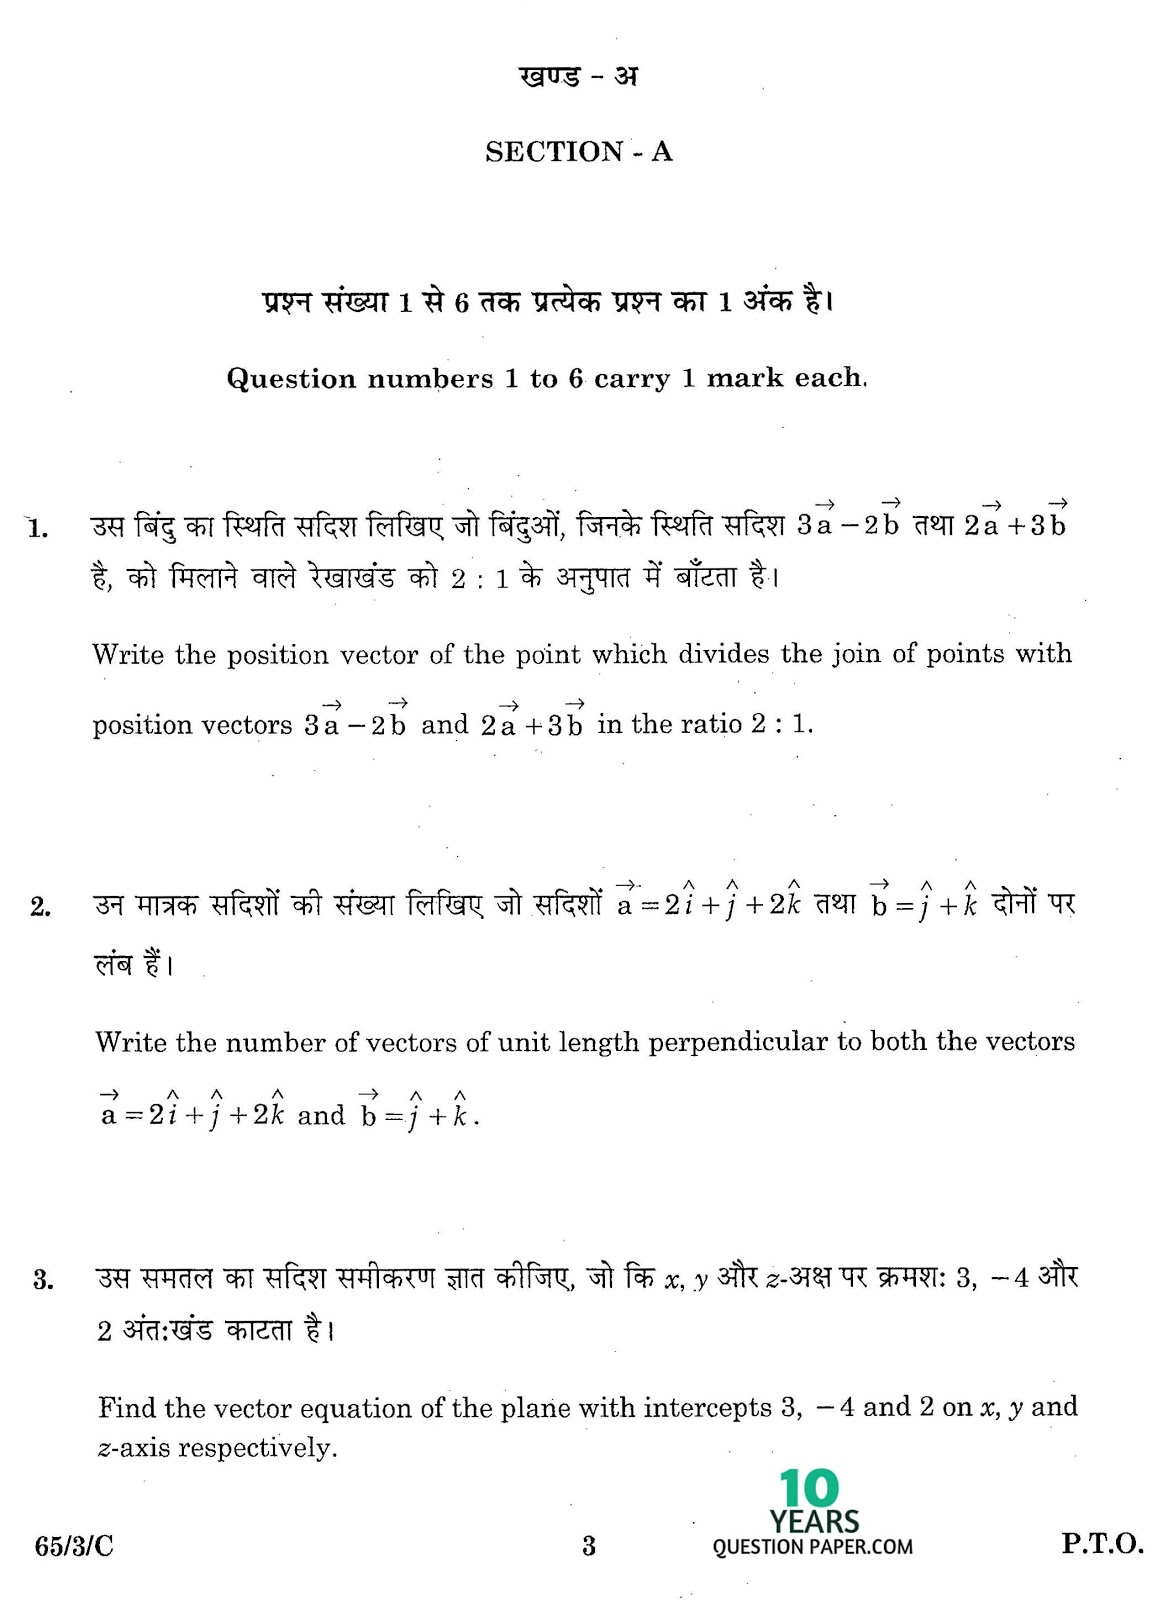 cbse class 12th 2016 Mathematics question paper